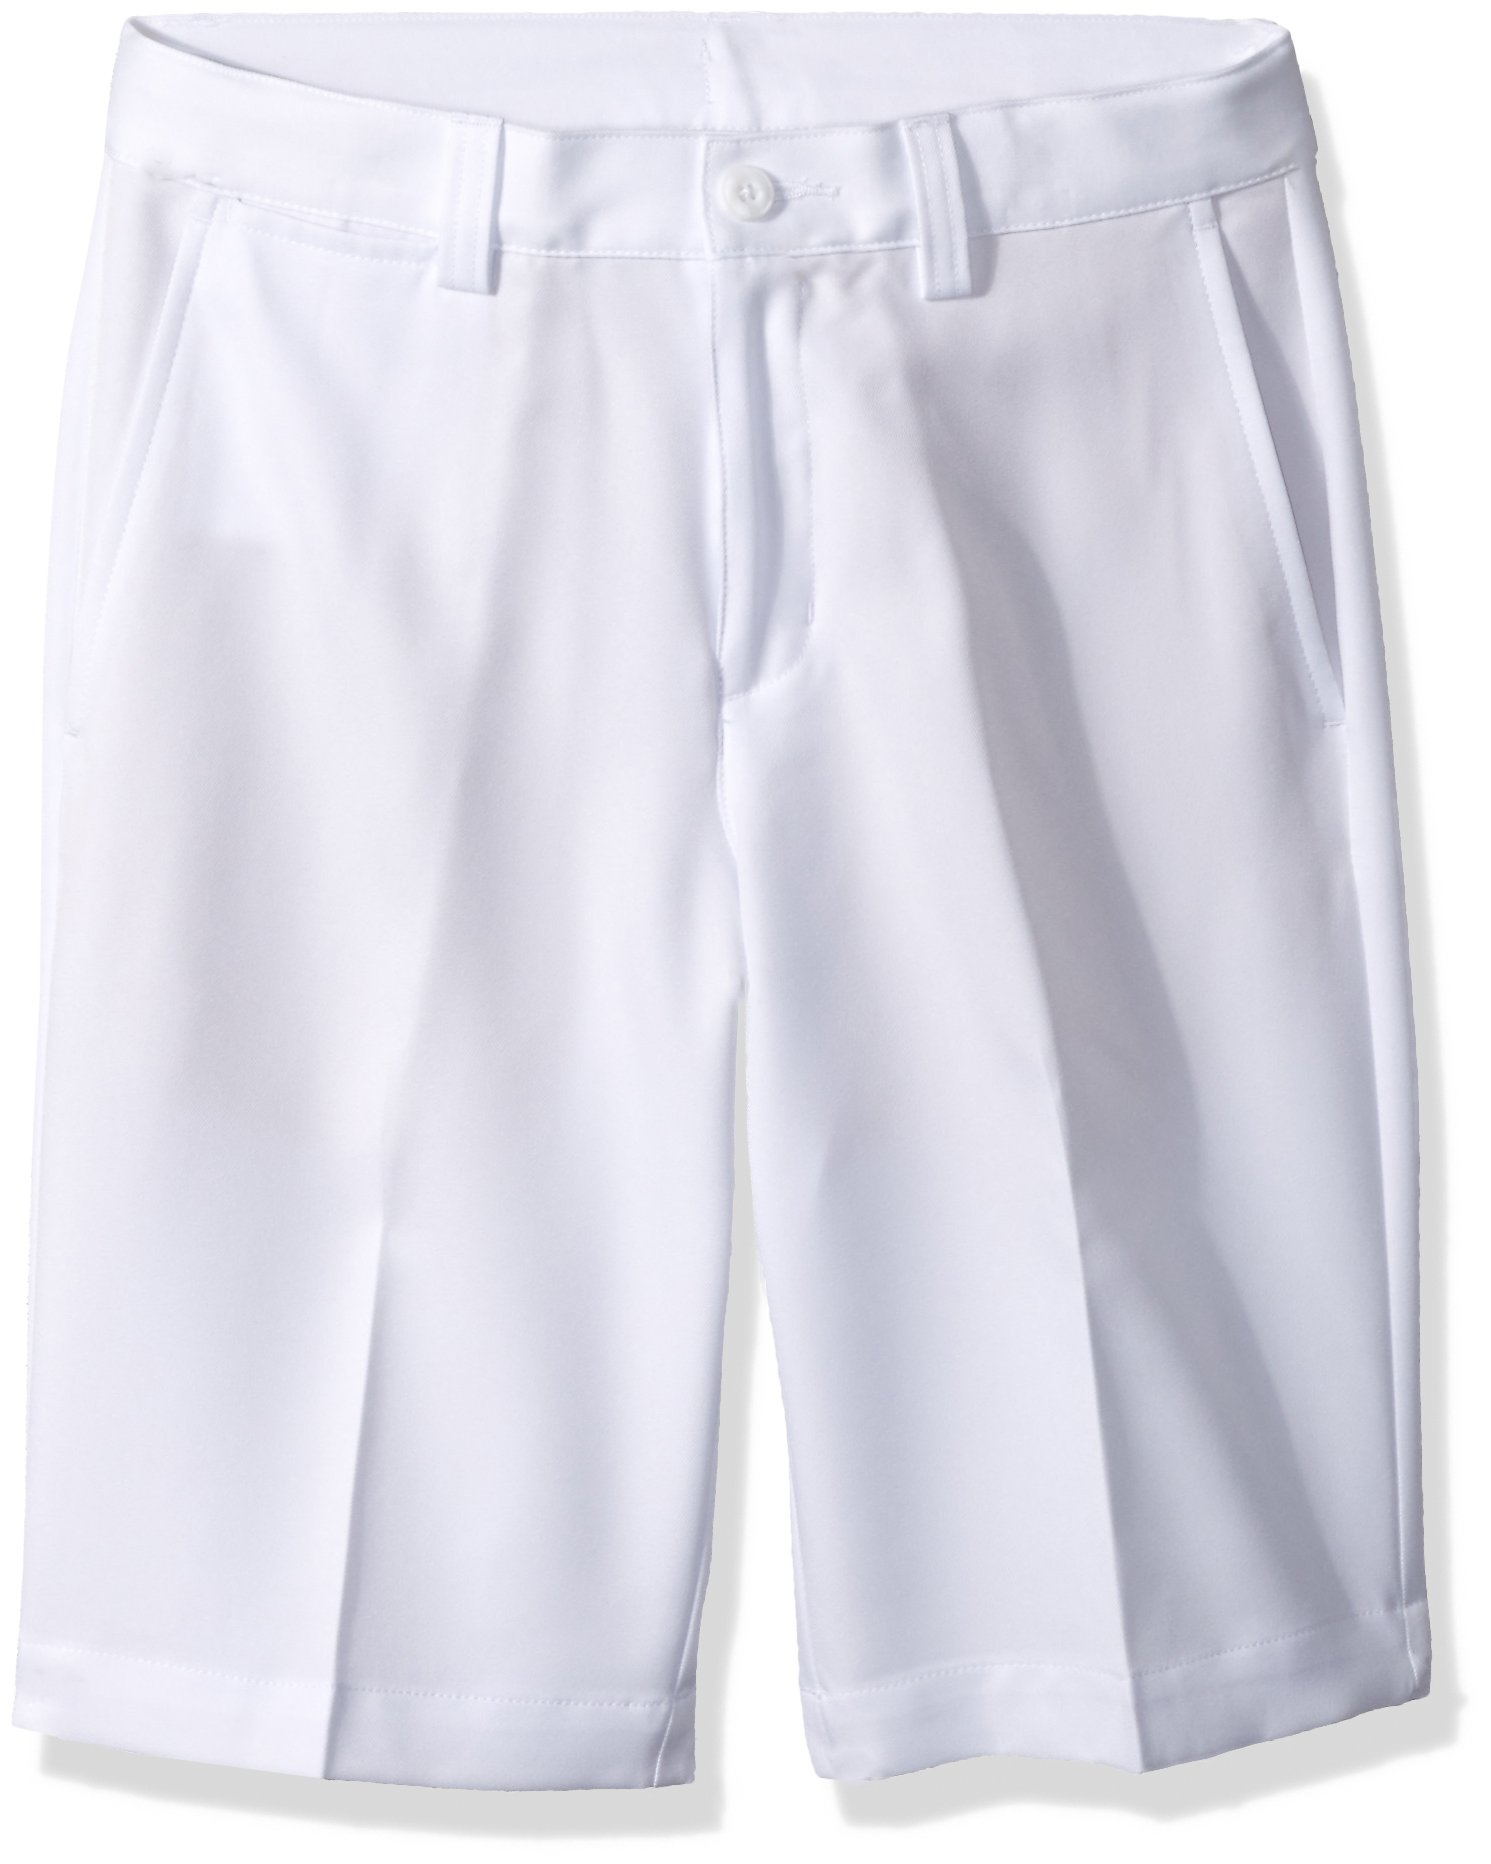 PGA TOUR Big Boy's Comfort Stretch Flat Front Short, Bright White, Large (14-16)